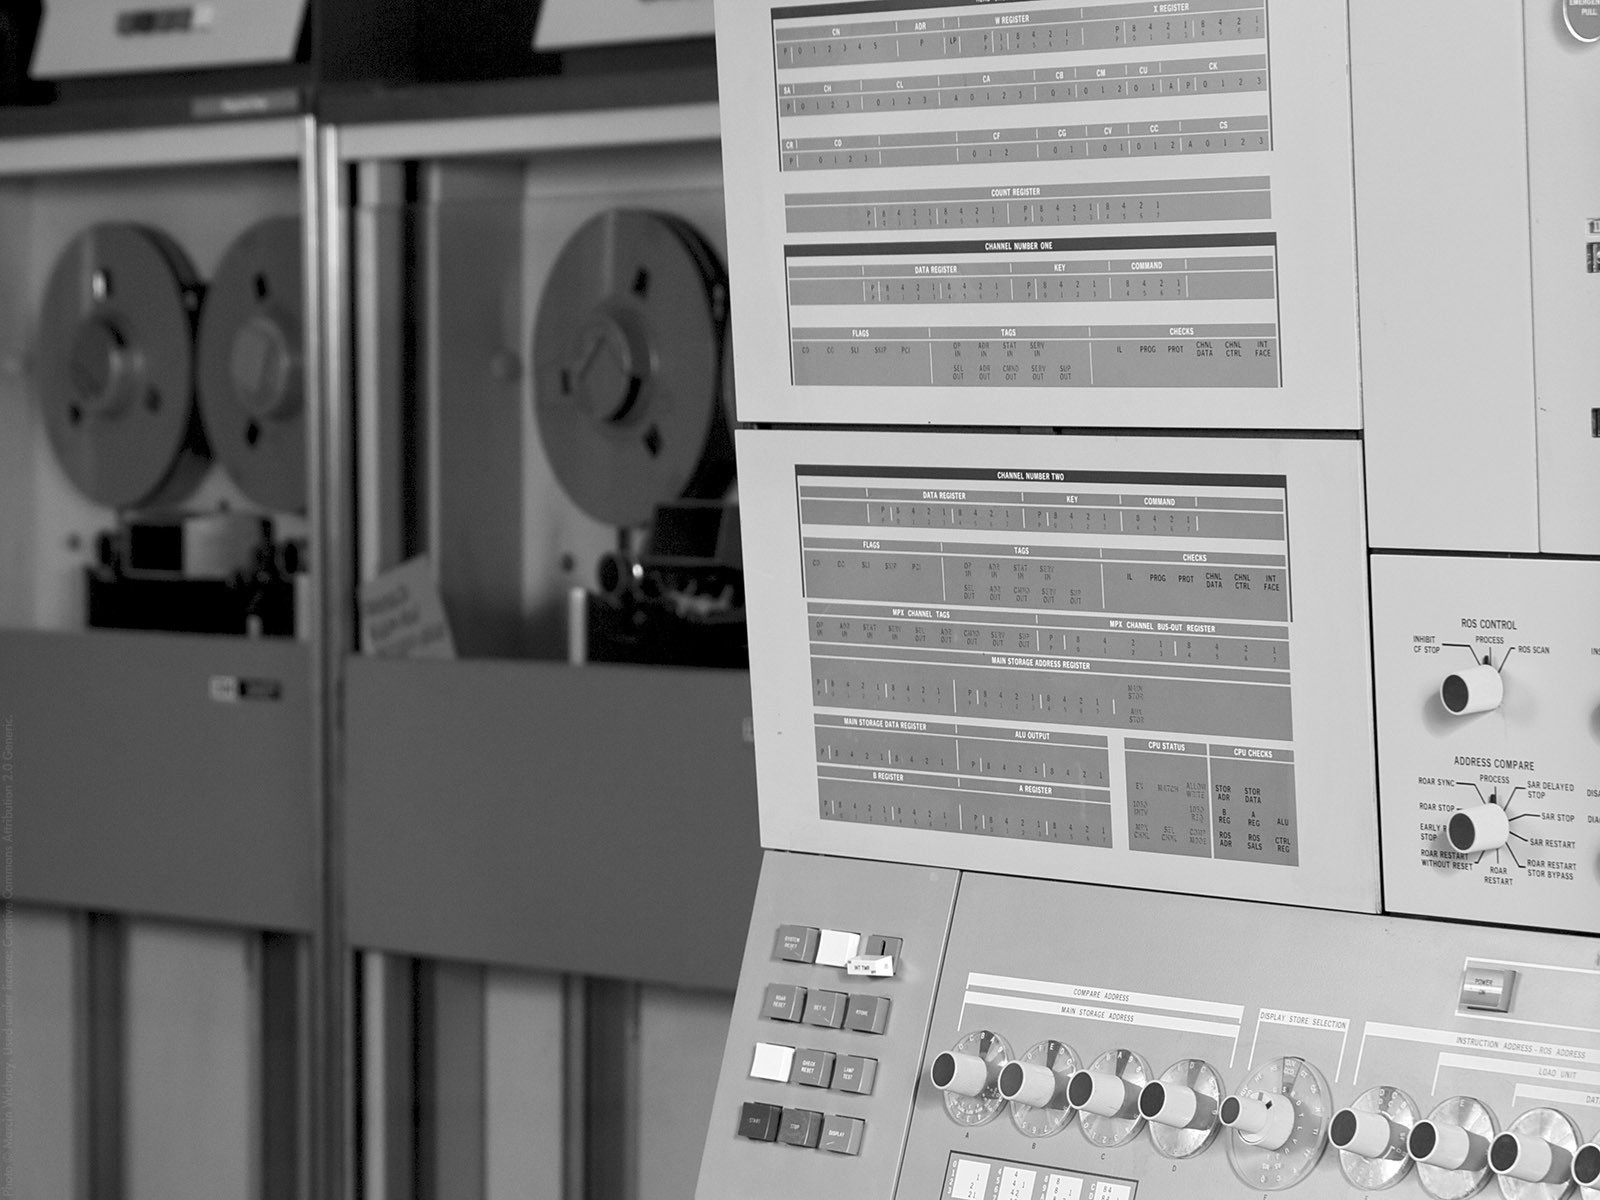 9-track tape IBM 360 HD Wallpaper